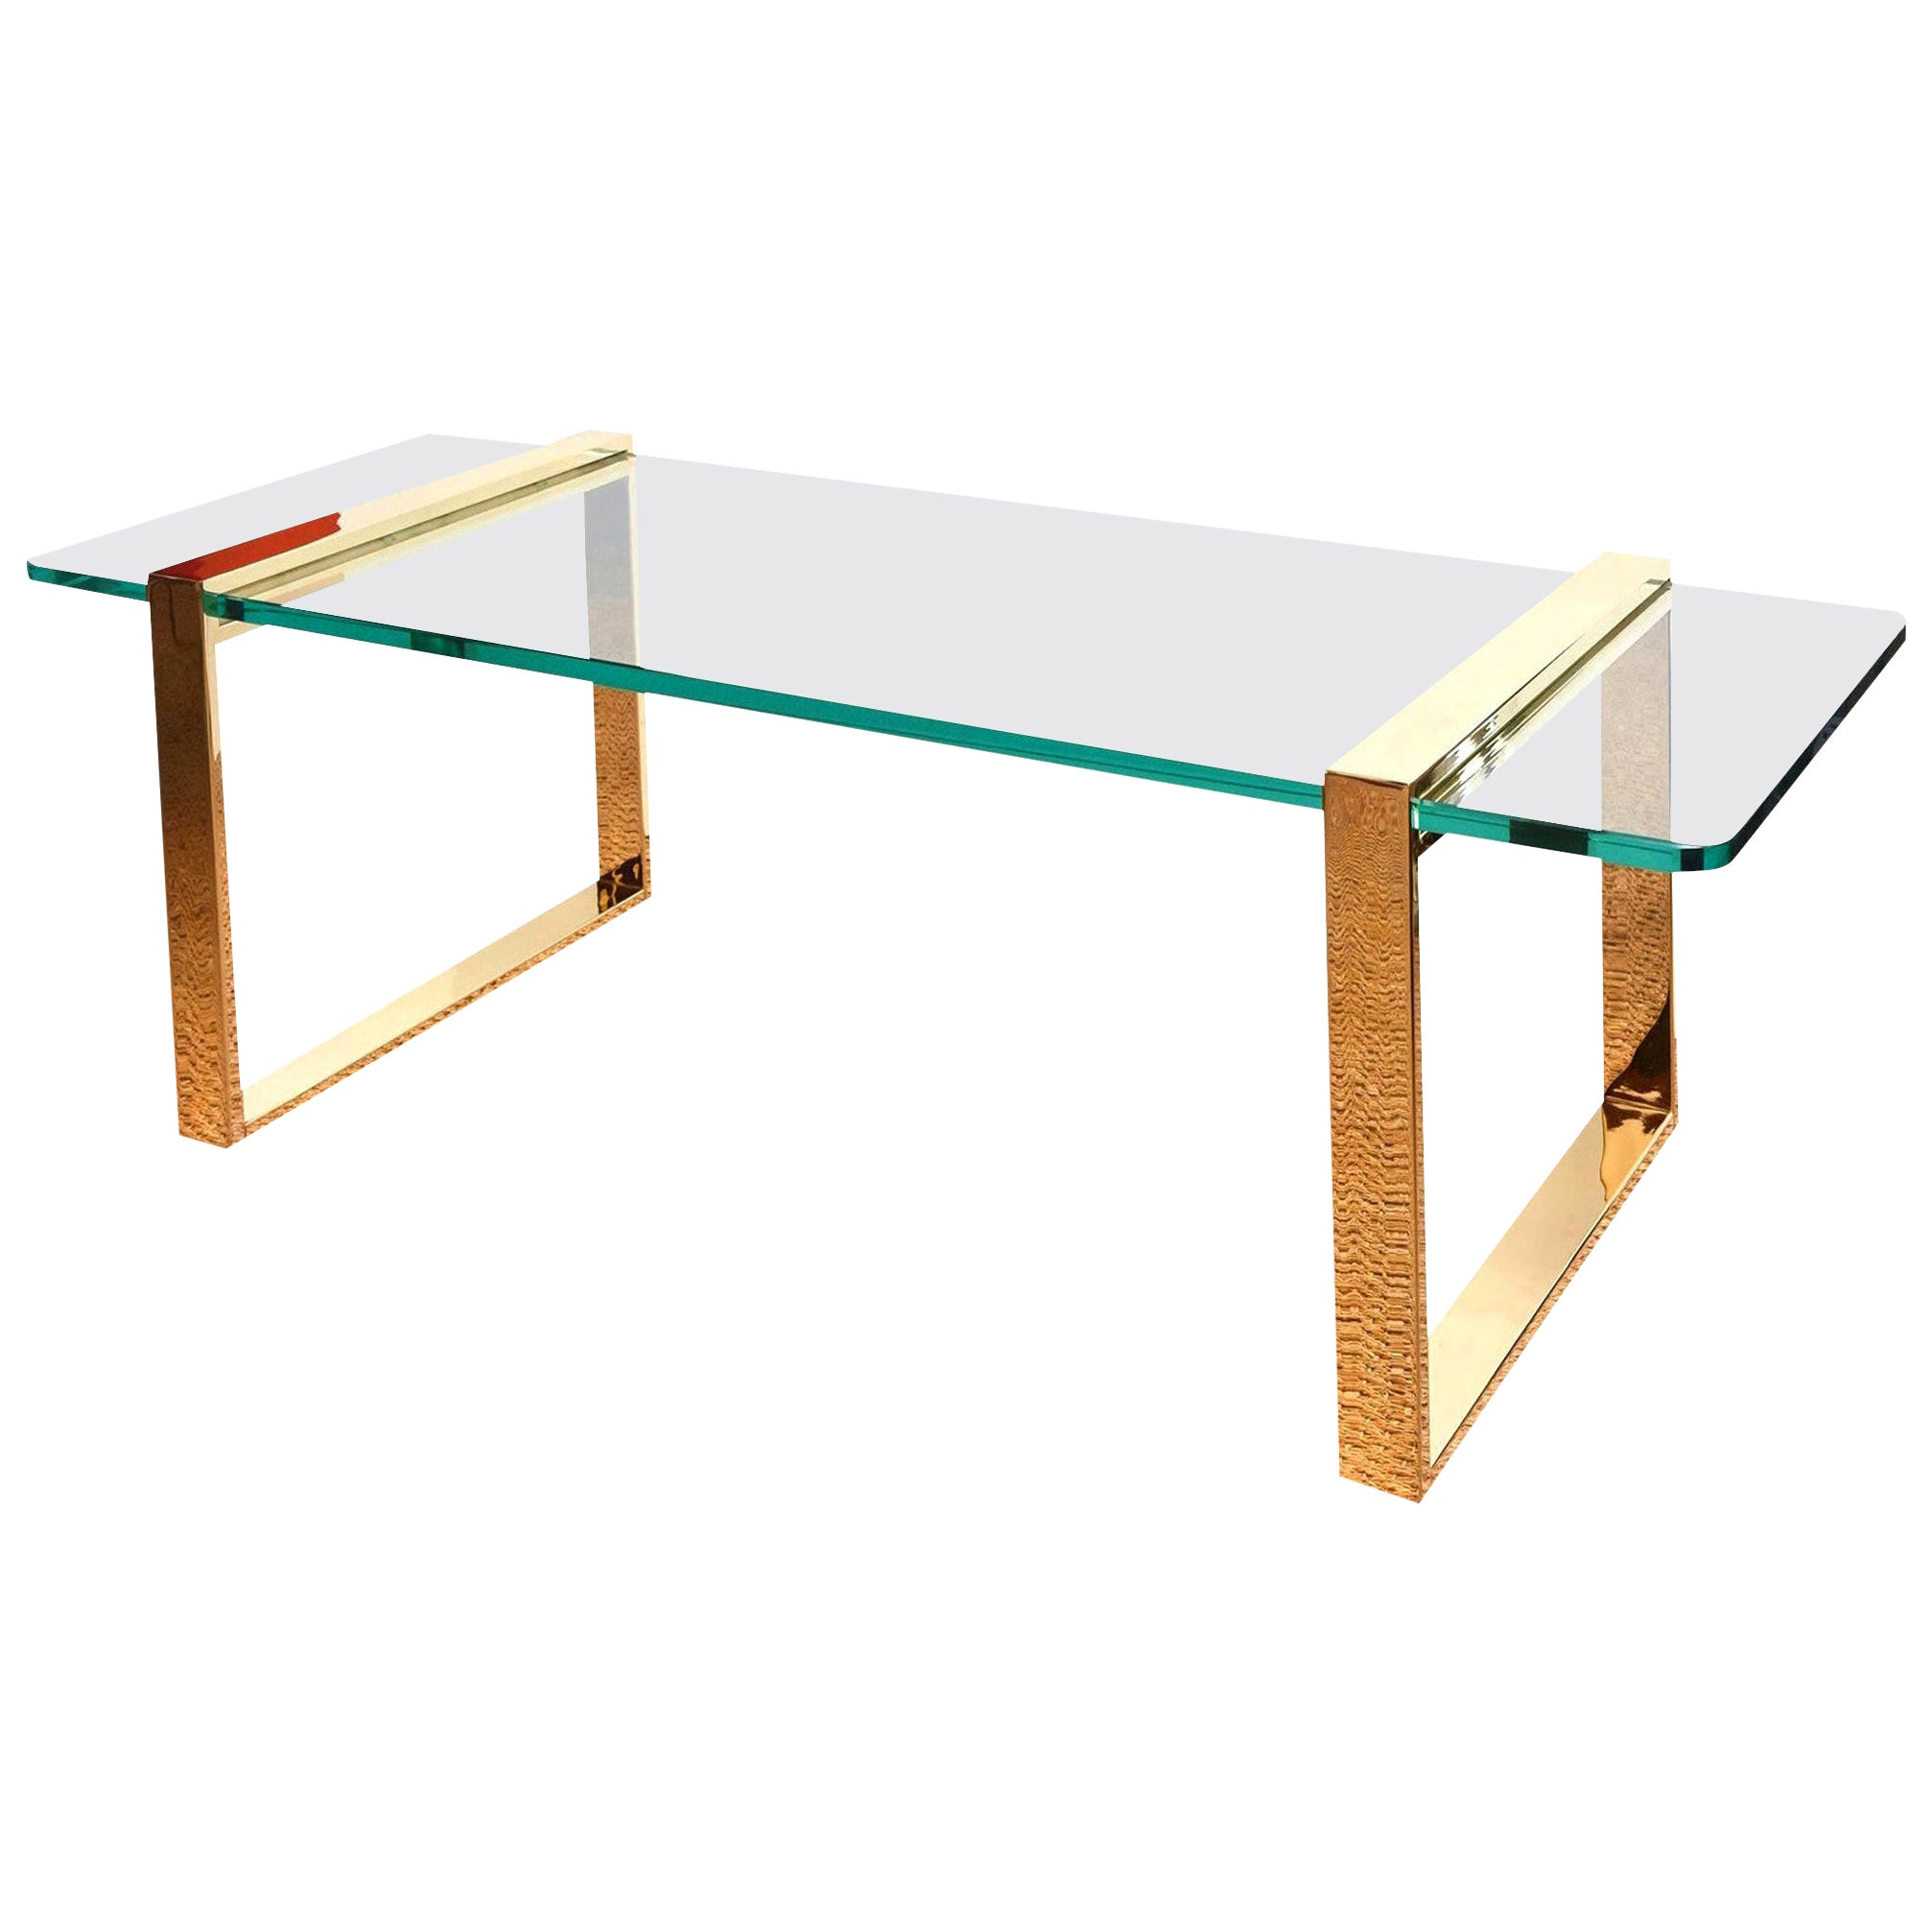 Leon Rosen for Pace Gold-Plated and Glass Sculptural Cocktail or Library Table